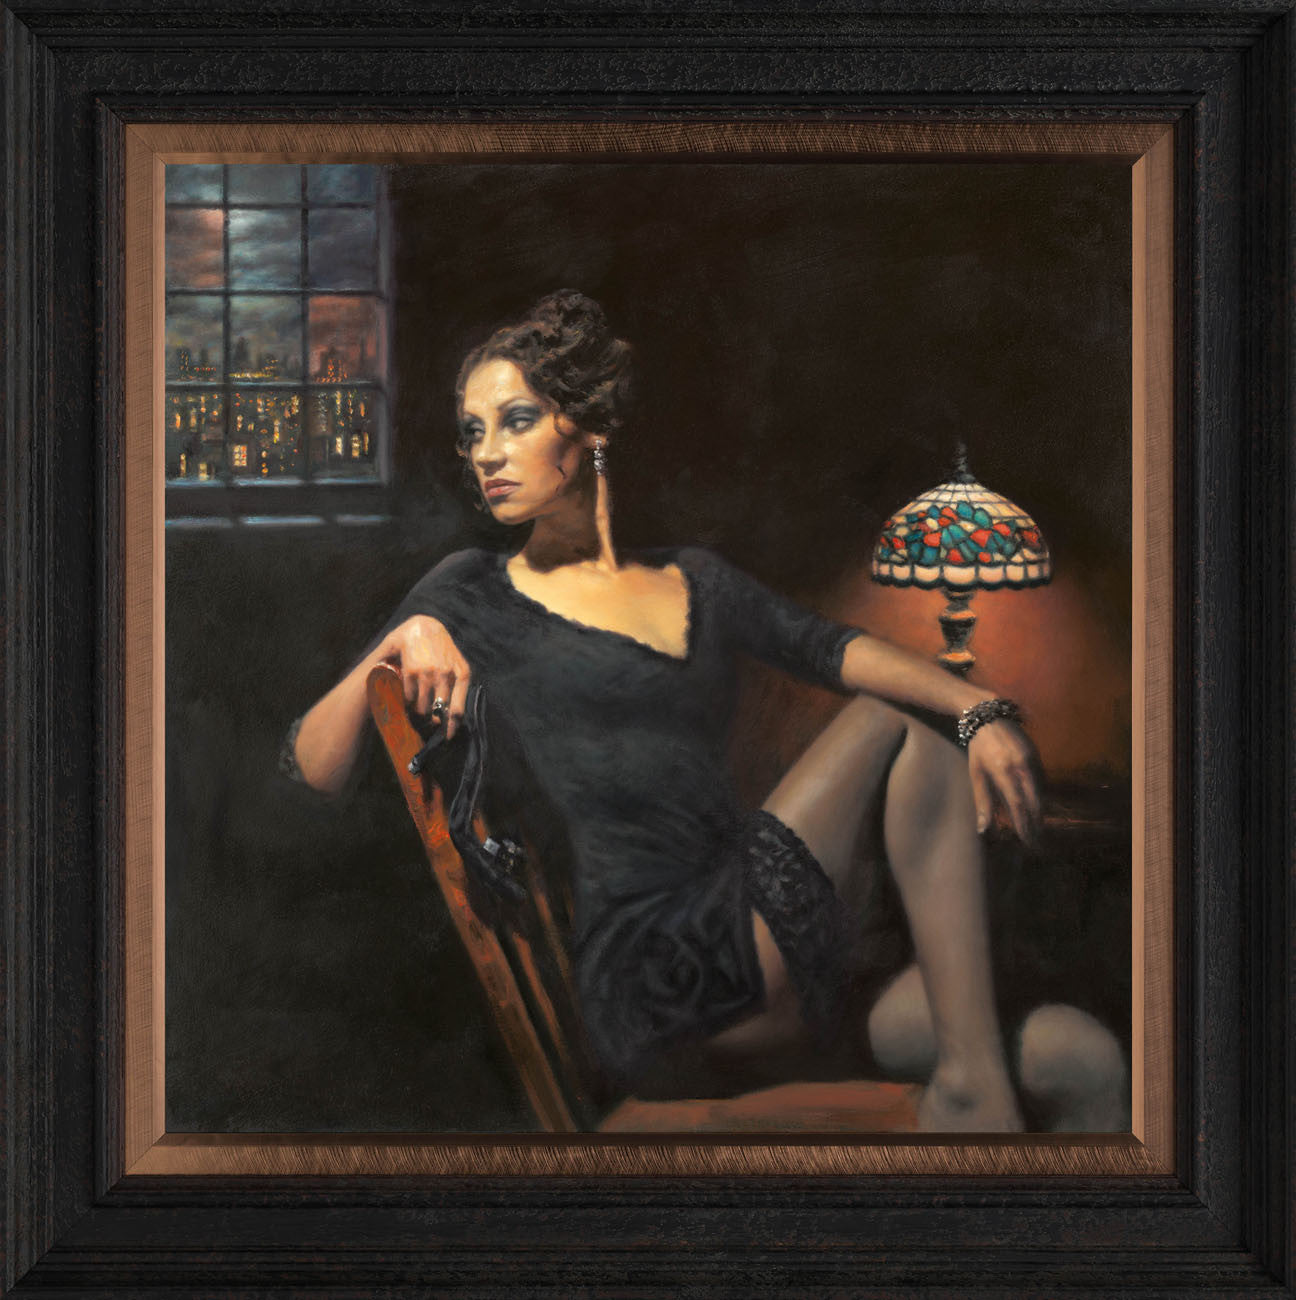 The Night Is Hers - 2013 - Hamish Blakely - Antidote Art